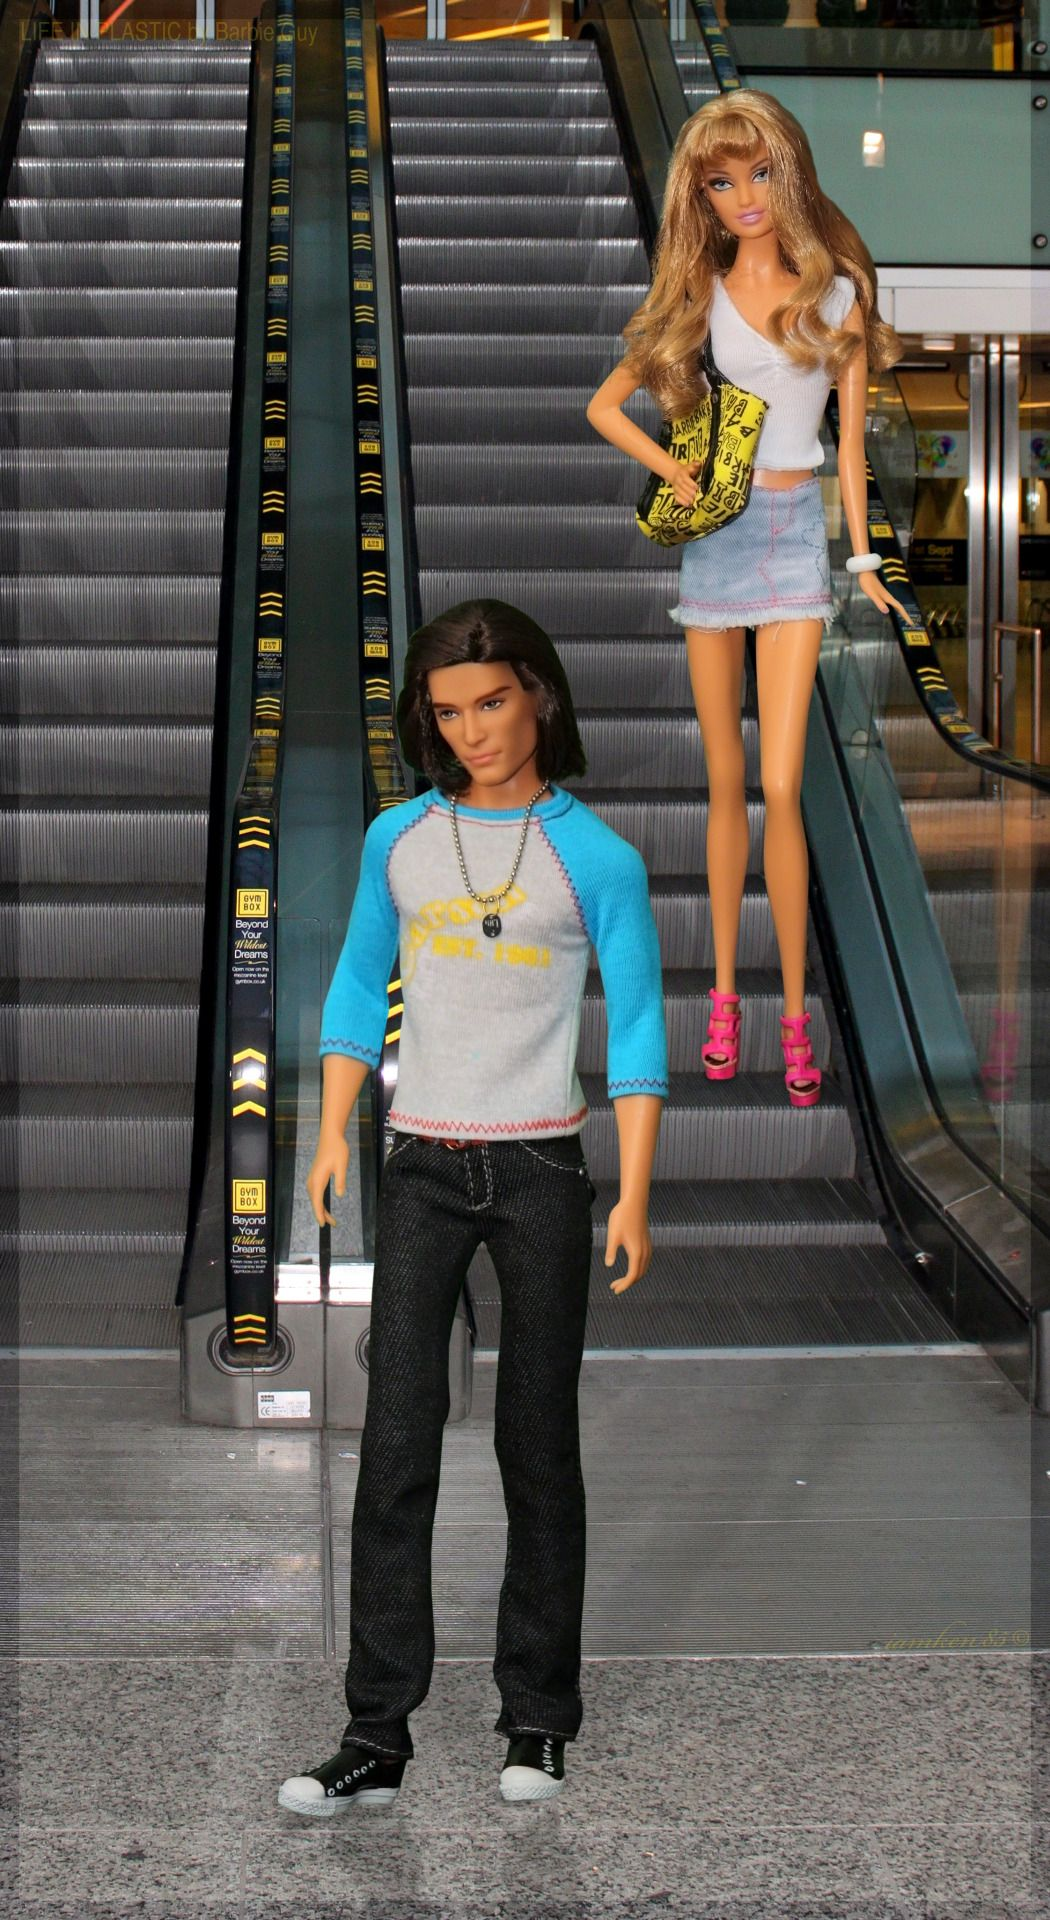 Escalator. In this photo: Barbie® Basics Model No. 15 Collection 002 and Cynthia Rowley Barbie® doll